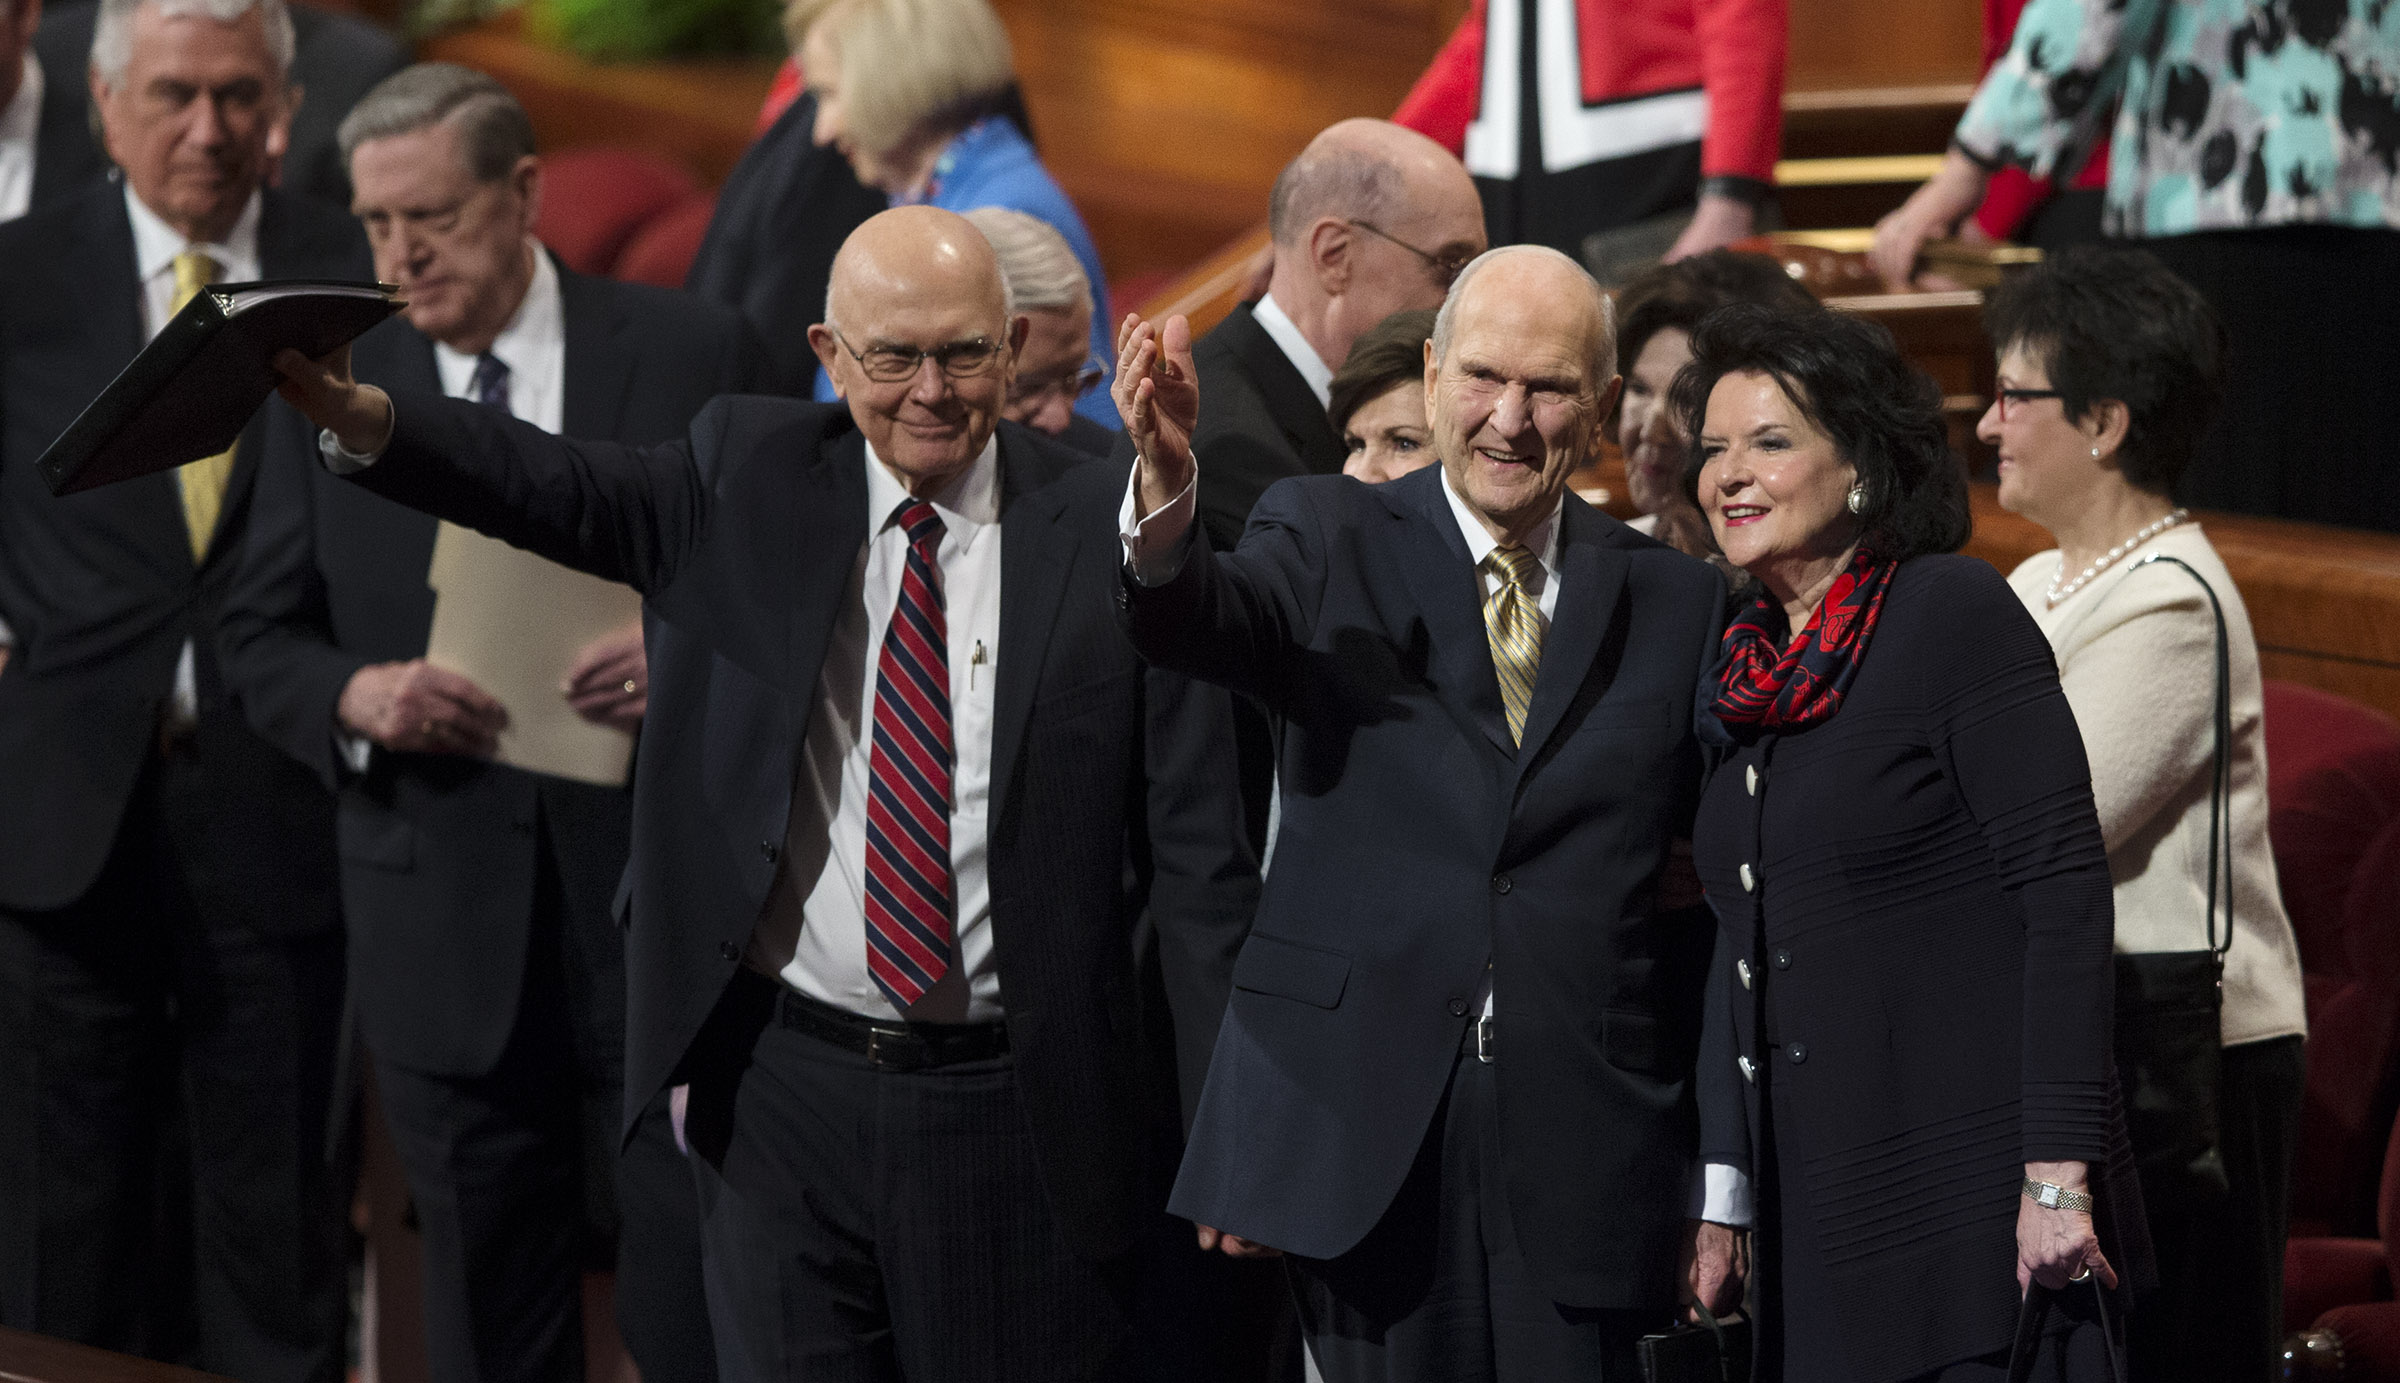 From left to right, President Dallin H. Oaks, first counselor in the First Presidency, LDS Church President Russell M. Nelson and his wife, Sister Wendy Watson Nelson, exit after the Sunday afternoon session of the 188th Annual General Conference of The Church of Jesus Christ of Latter-day Saints, in the Conference Center in Salt Lake City on Sunday, April 1, 2018.